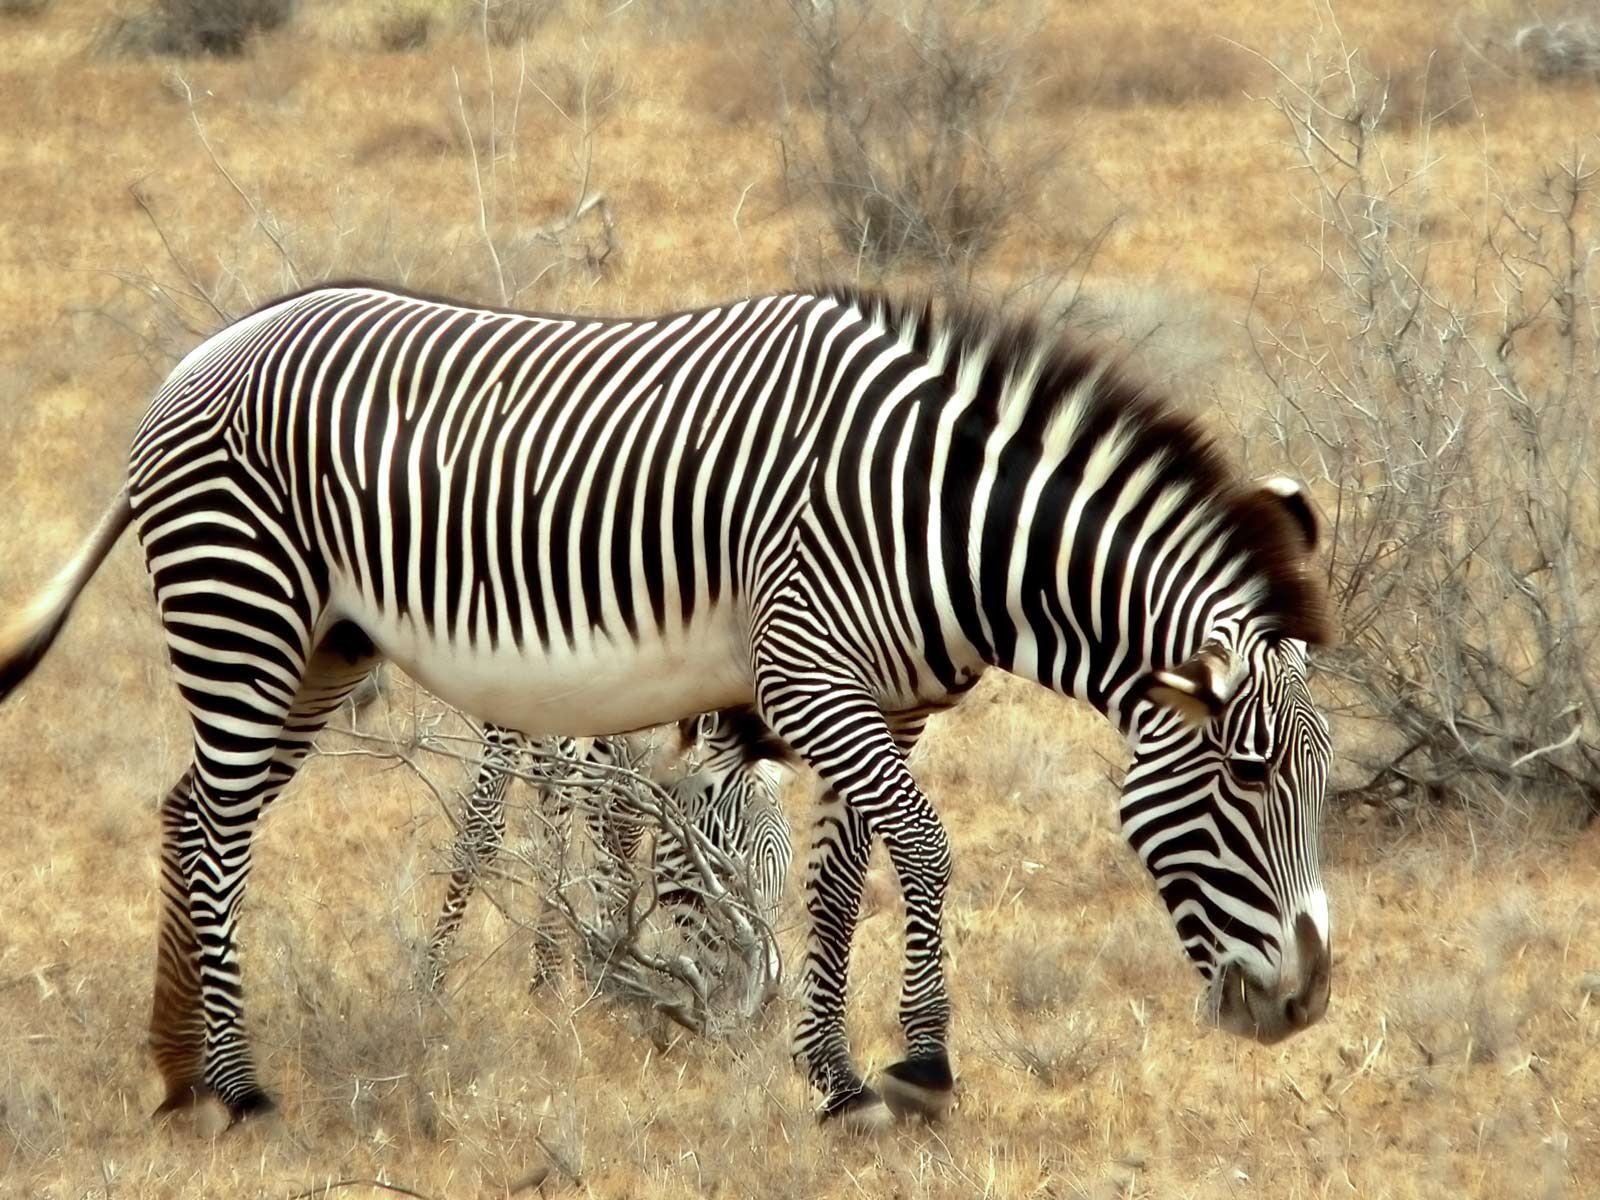 Zebra photo zebra new desktop hd wallpapers all about - All animals hd wallpapers ...